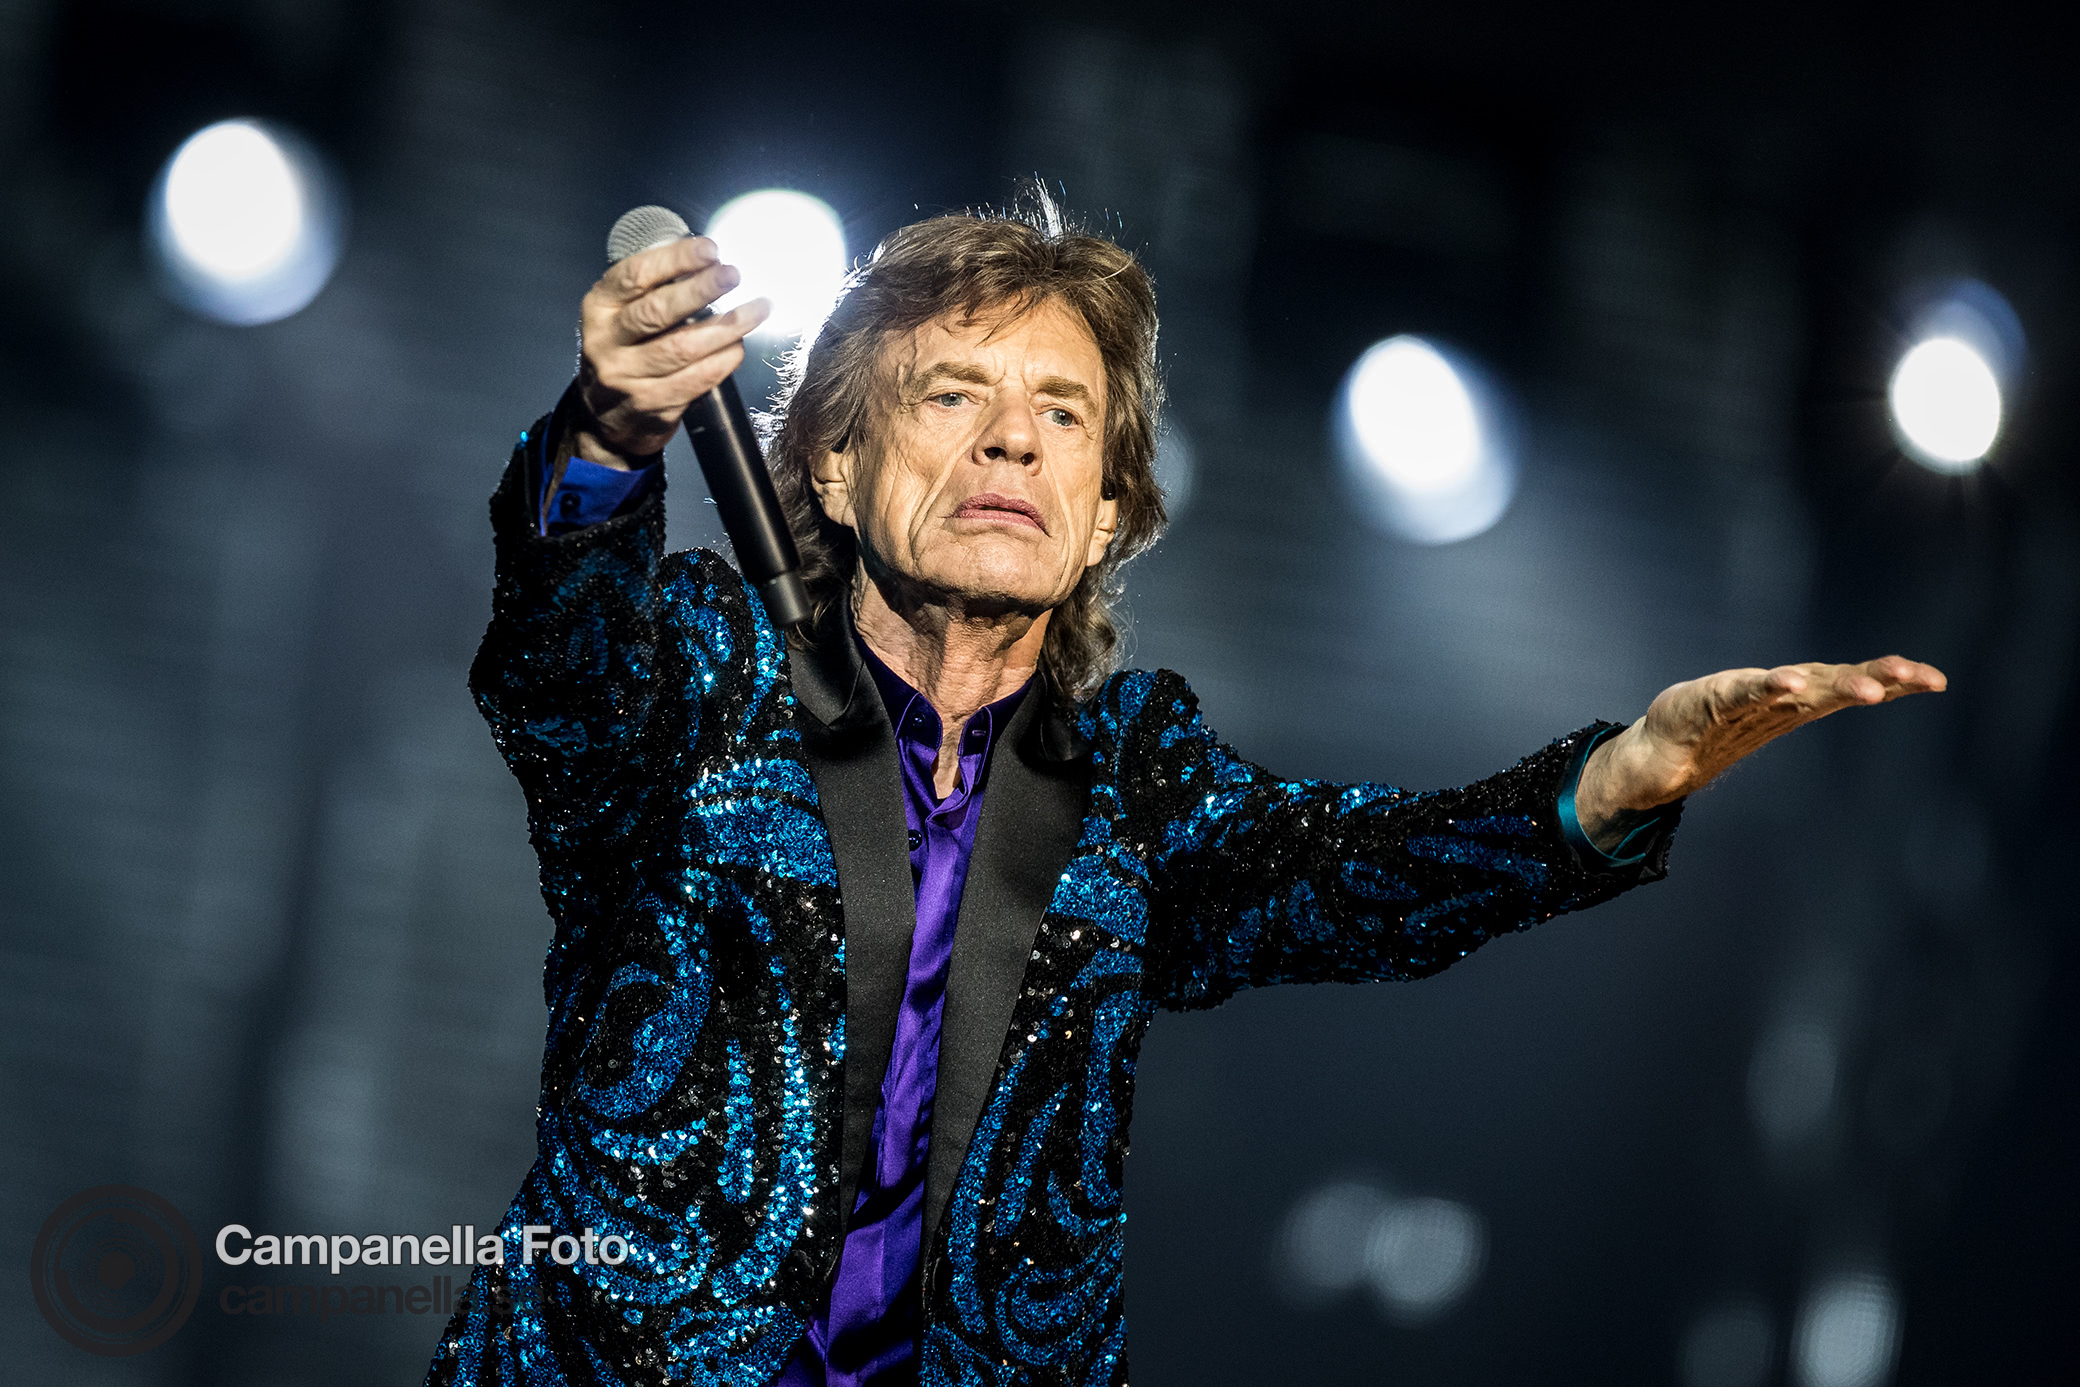 The Rolling Stones perform in Stockholm - Michael Campanella Photography